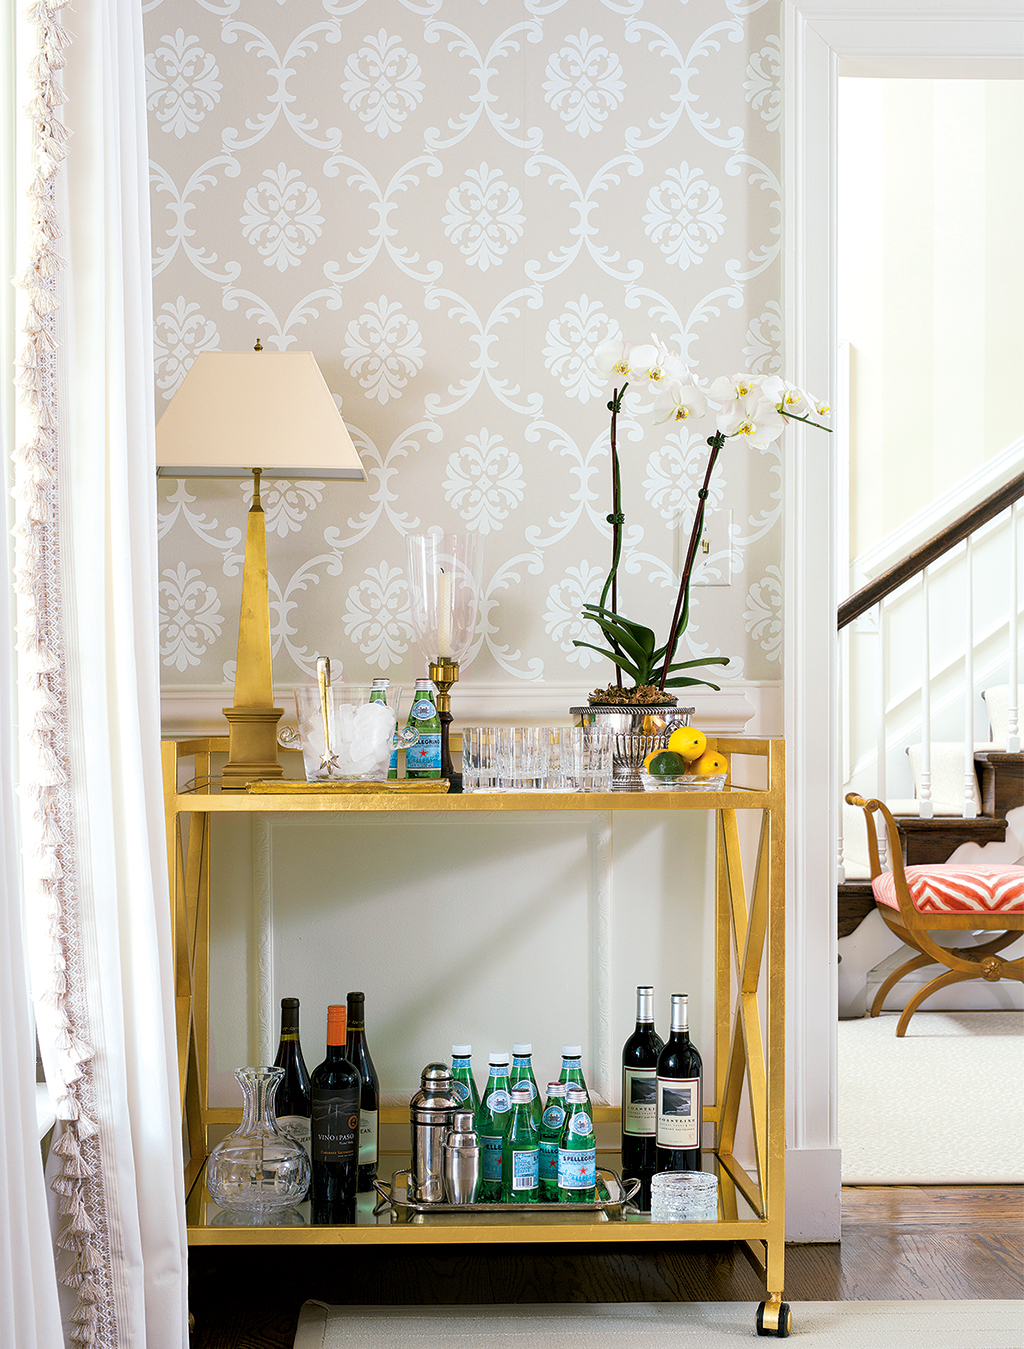 A bar cart greets guests. Photograph by Stacy Zarin Goldberg.